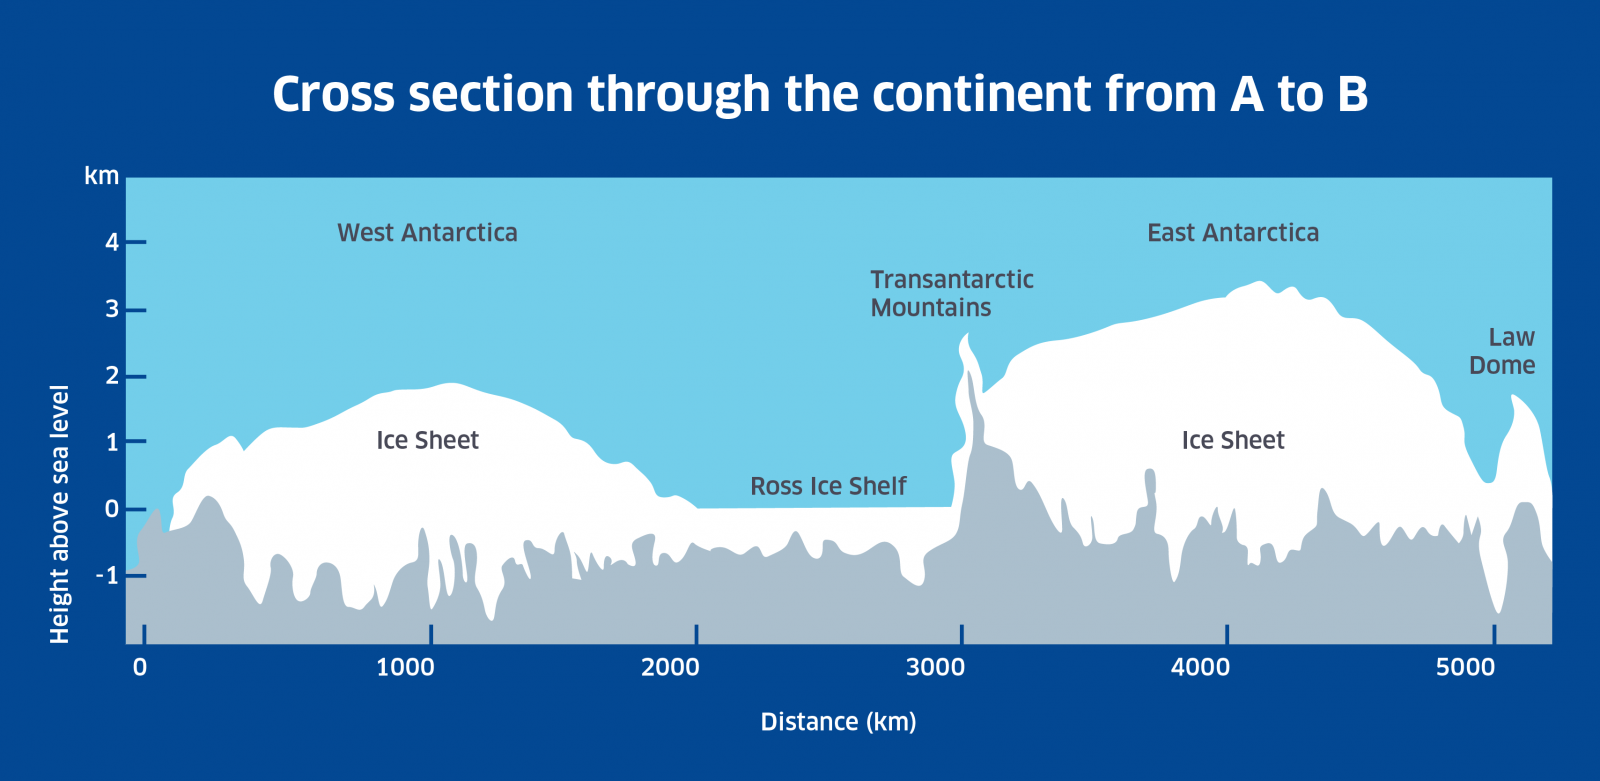 DA-diags_D_a_1.4_continent_cross_section_ab.png